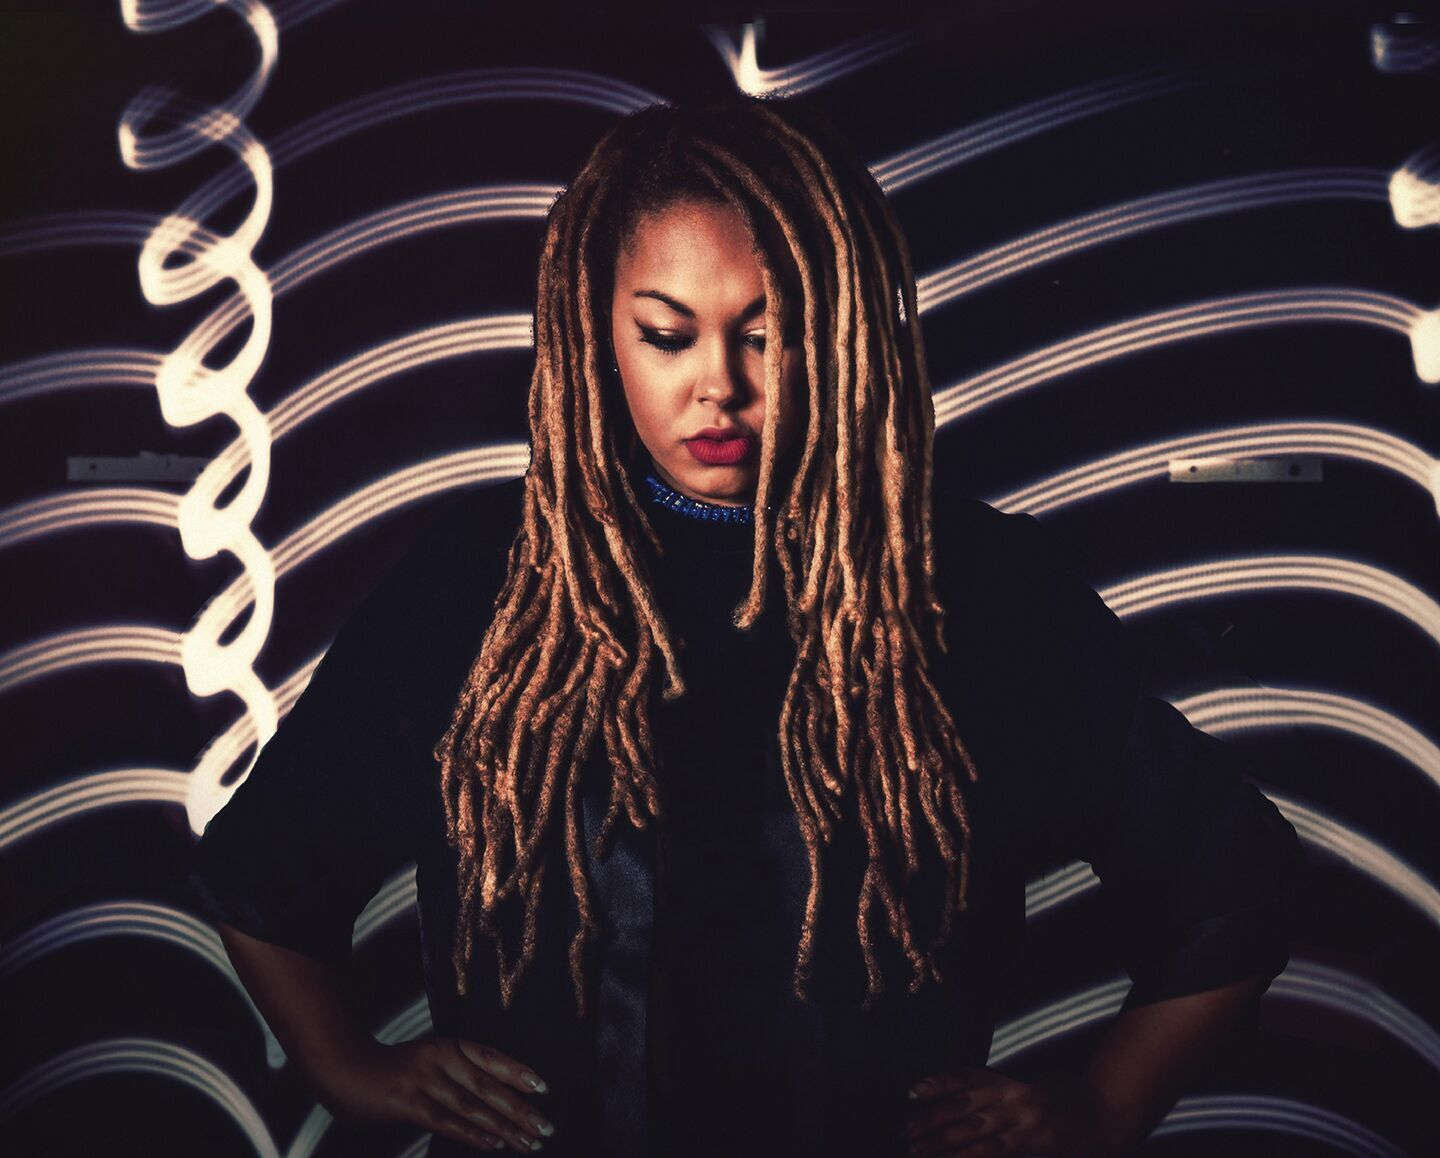 INTERVIEW: Future soul queen Harleighblu